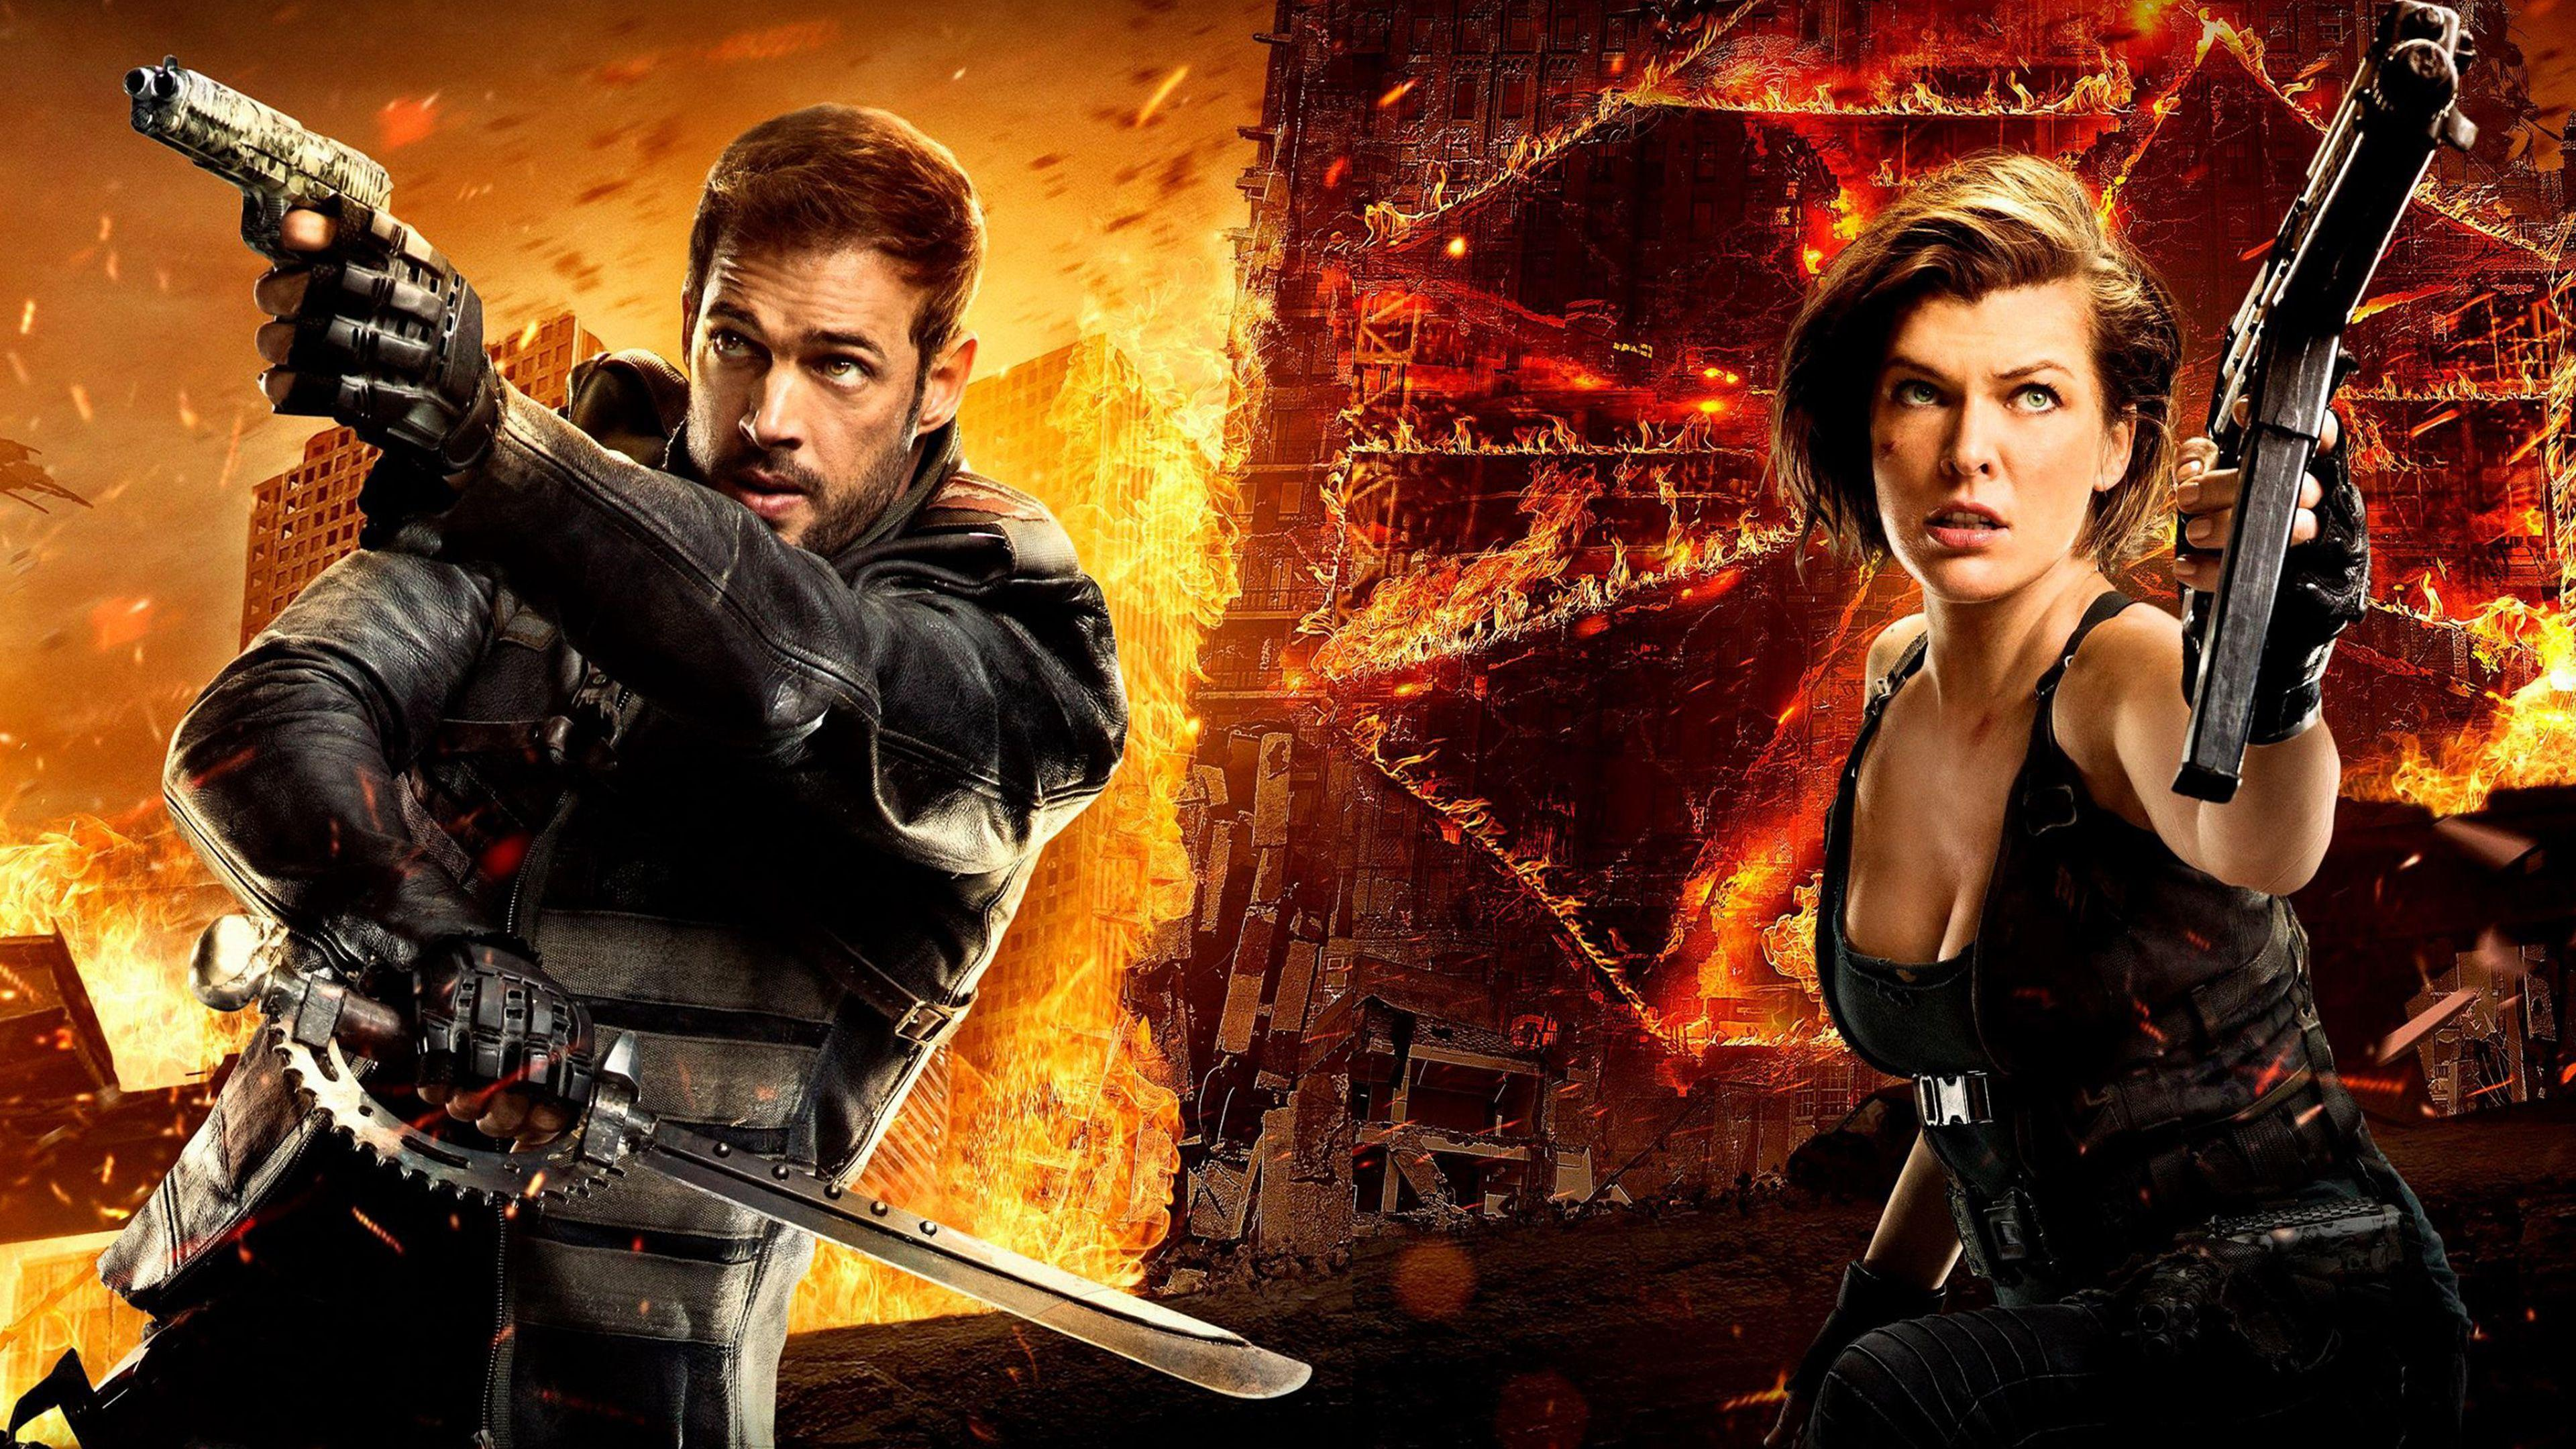 Resident Evil The Final Chapter 24: Resident Evil: The Final Chapter Wallpapers